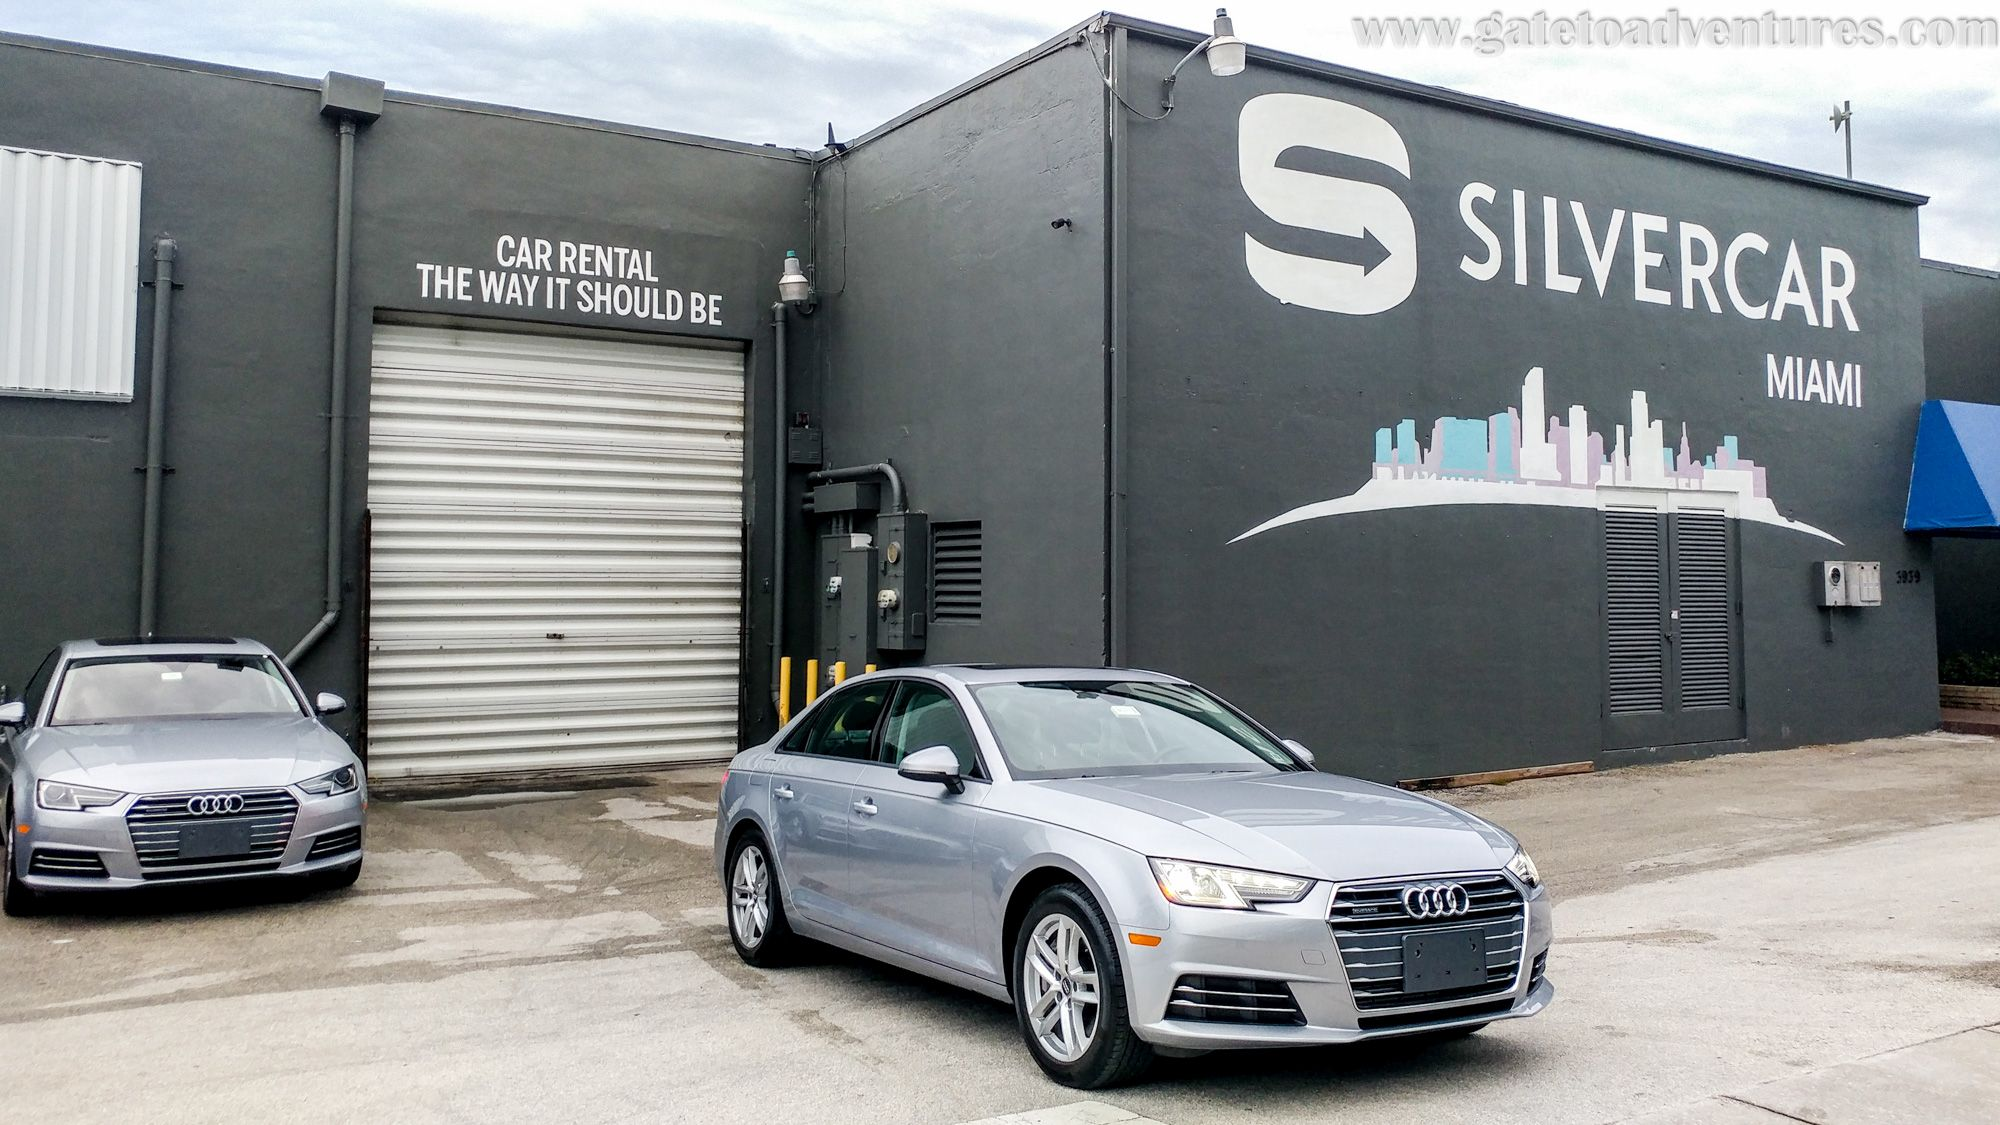 Review Silvercar At Miami International Airport Mia